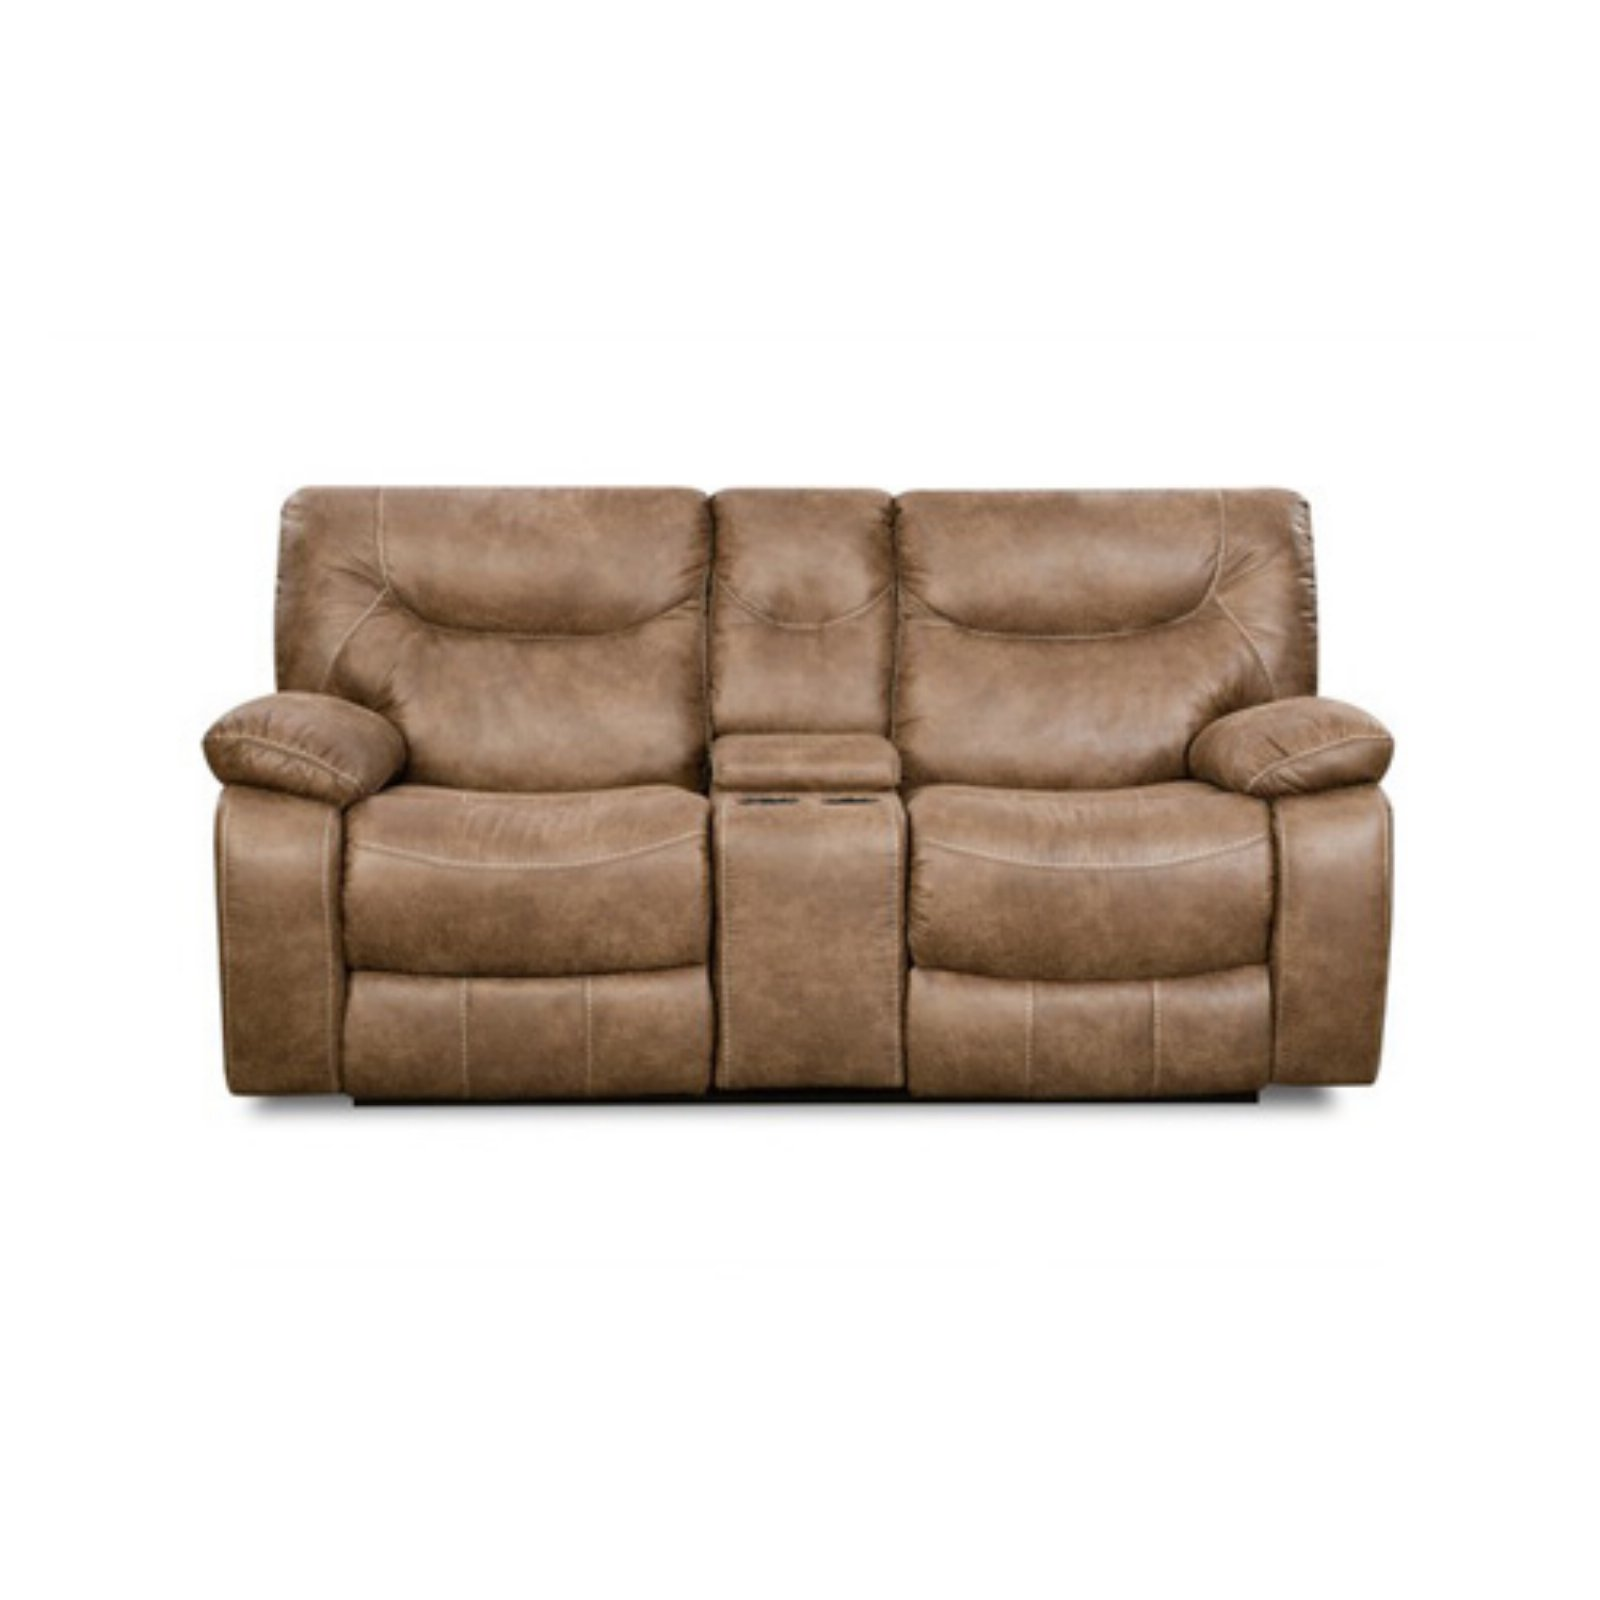 Simmons Topgun Saddle Double Motion Console Loveseat